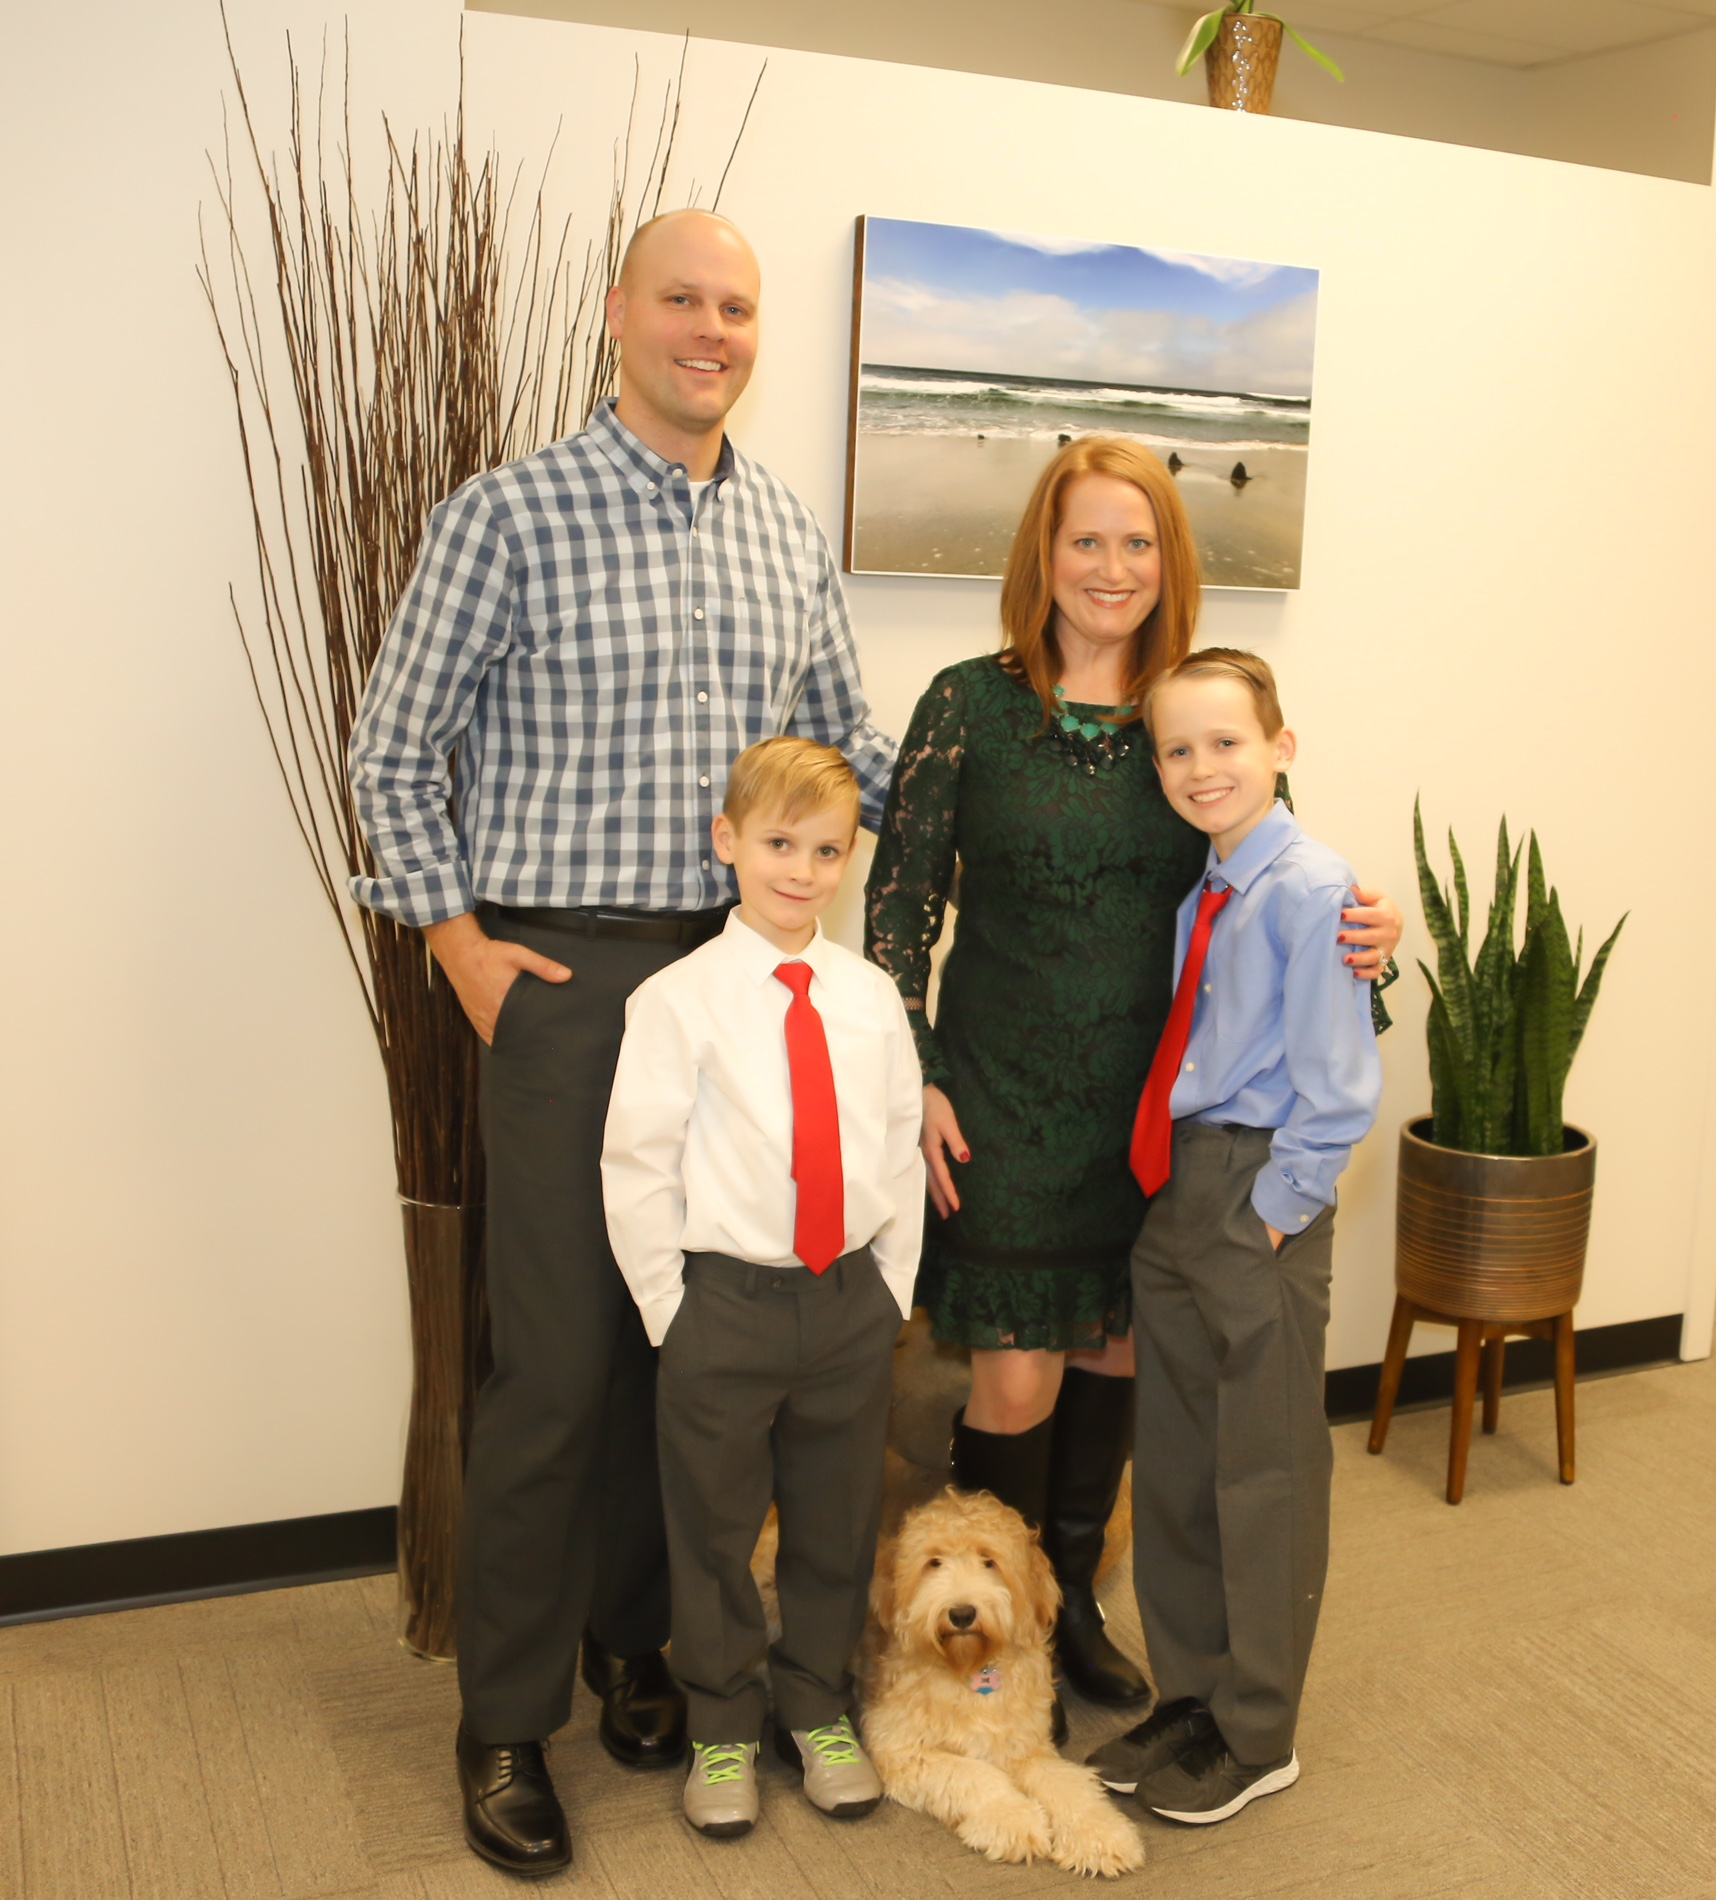 Dr. Ryan Schoeb with his wife, Molly, Connor, Cullen, and Goldendoodle Roxy